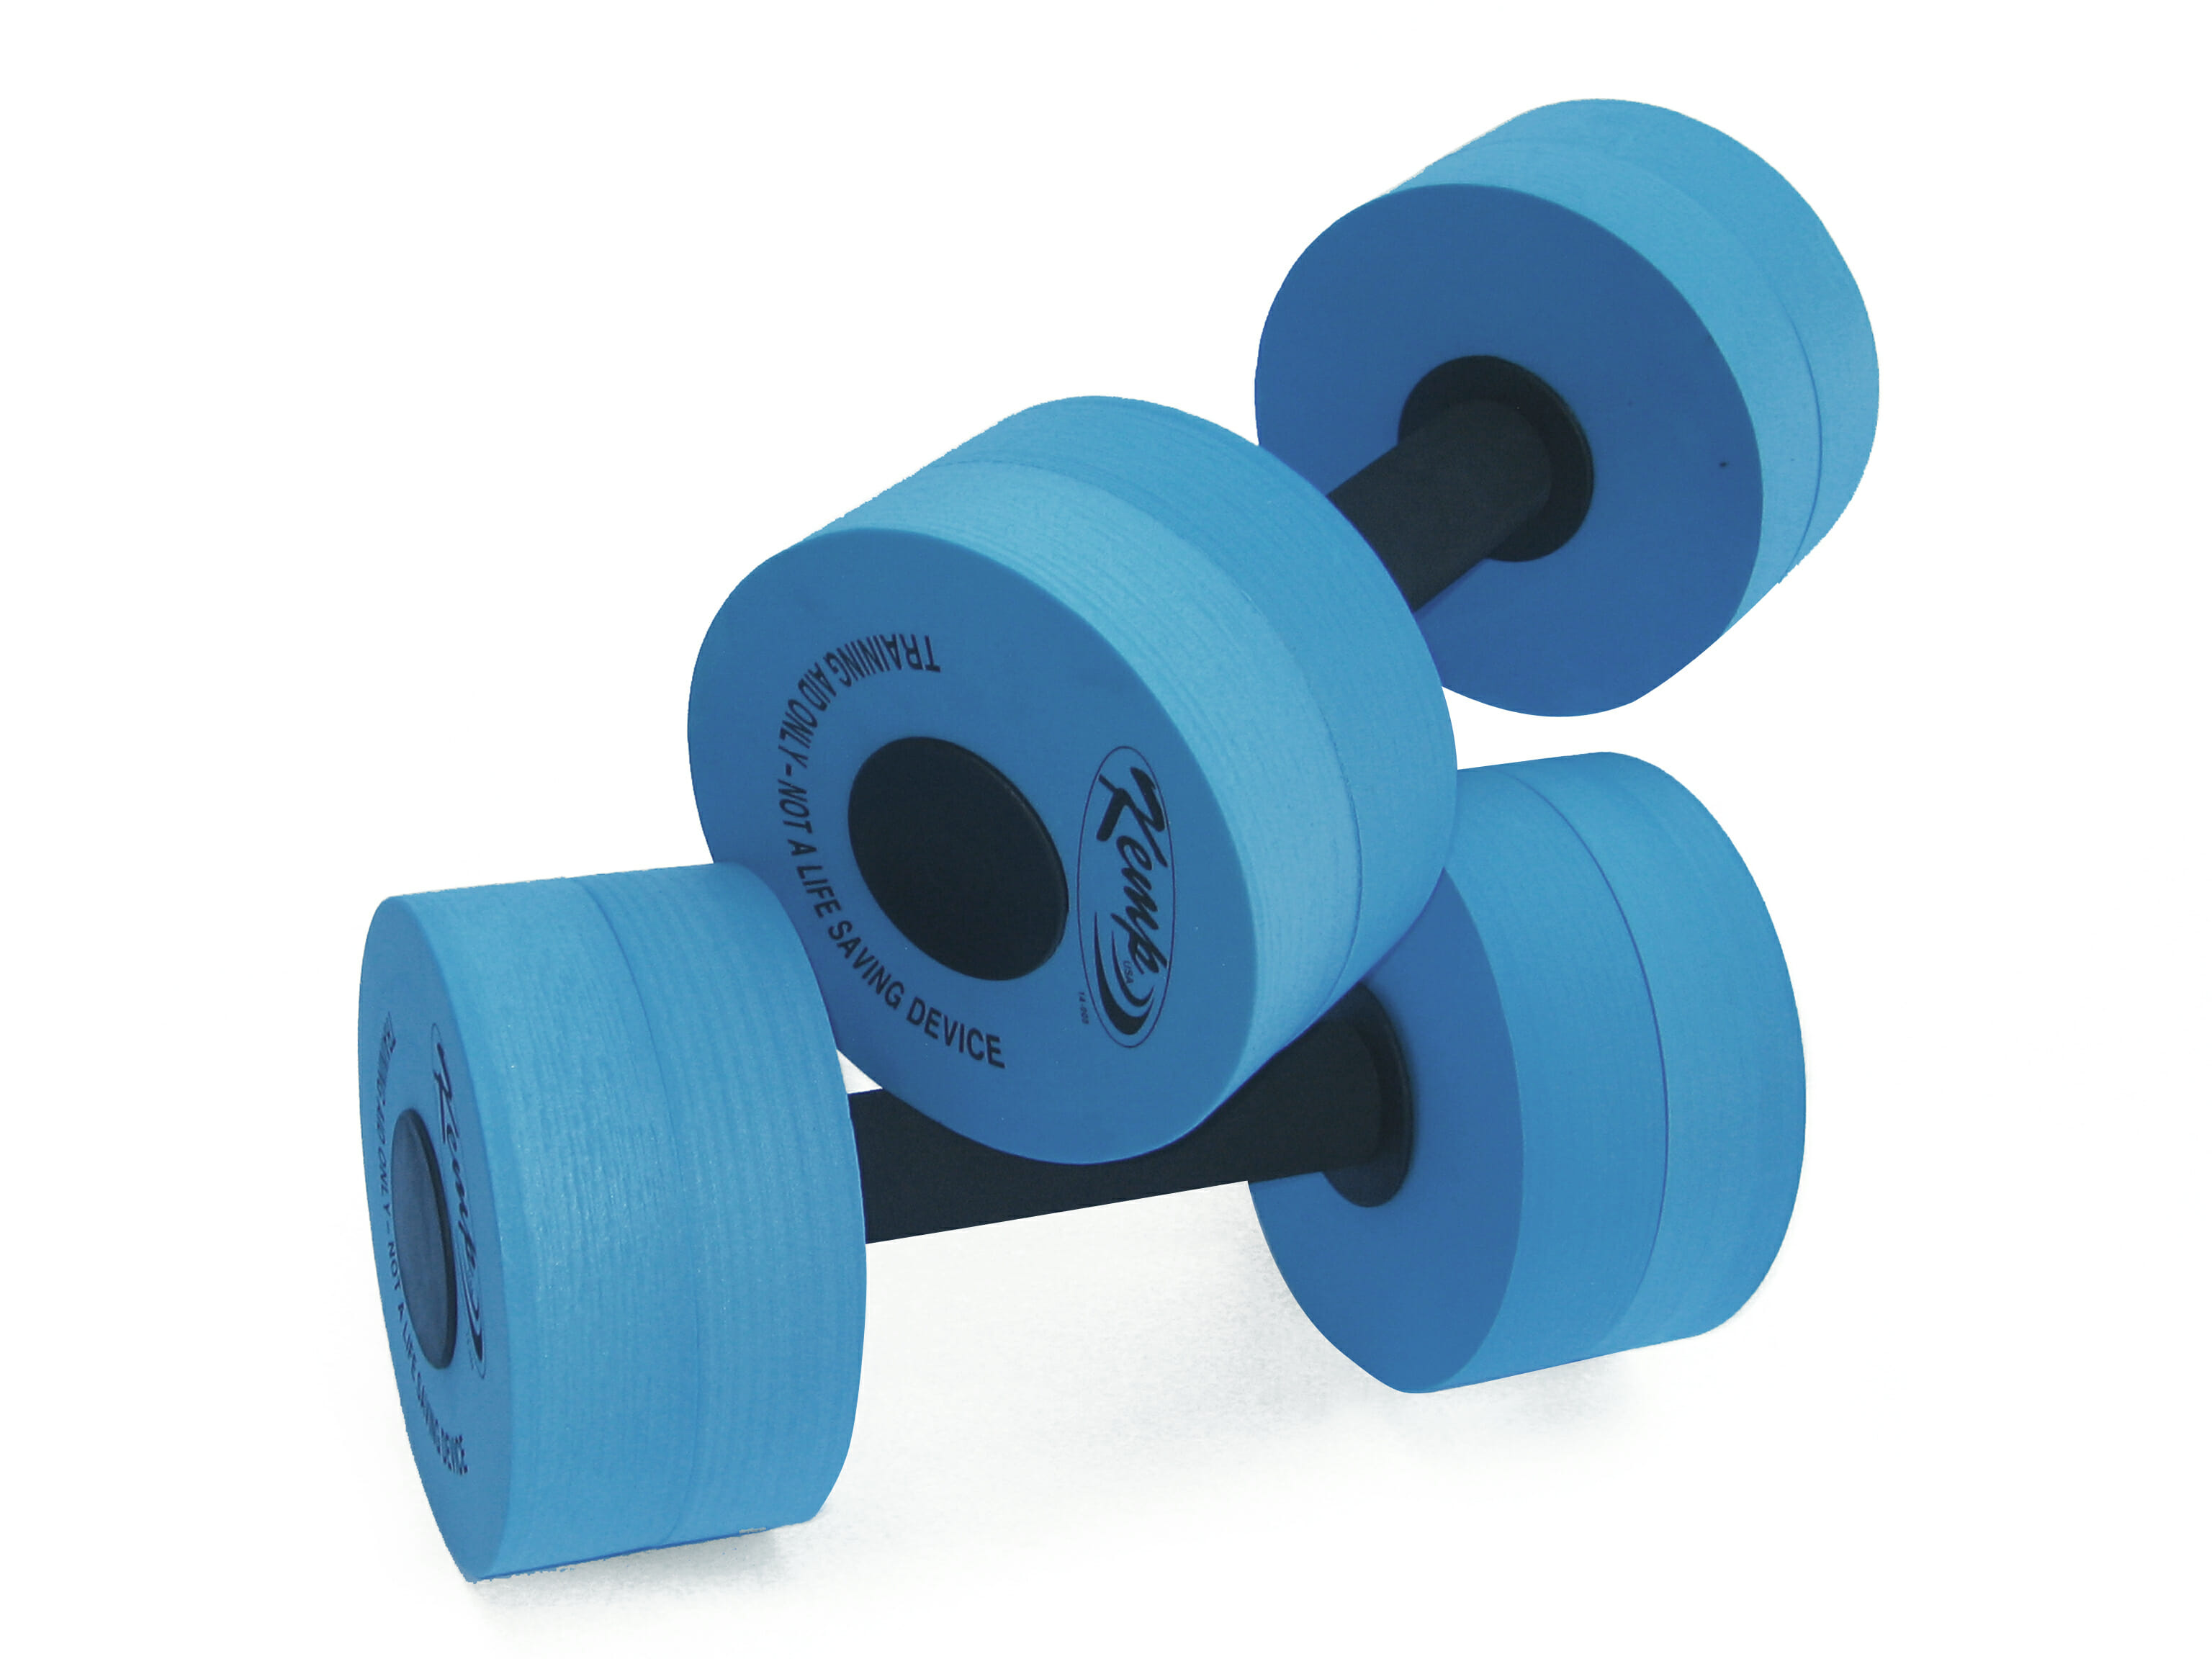 KEMP Aquatic Dumbbells (pair)